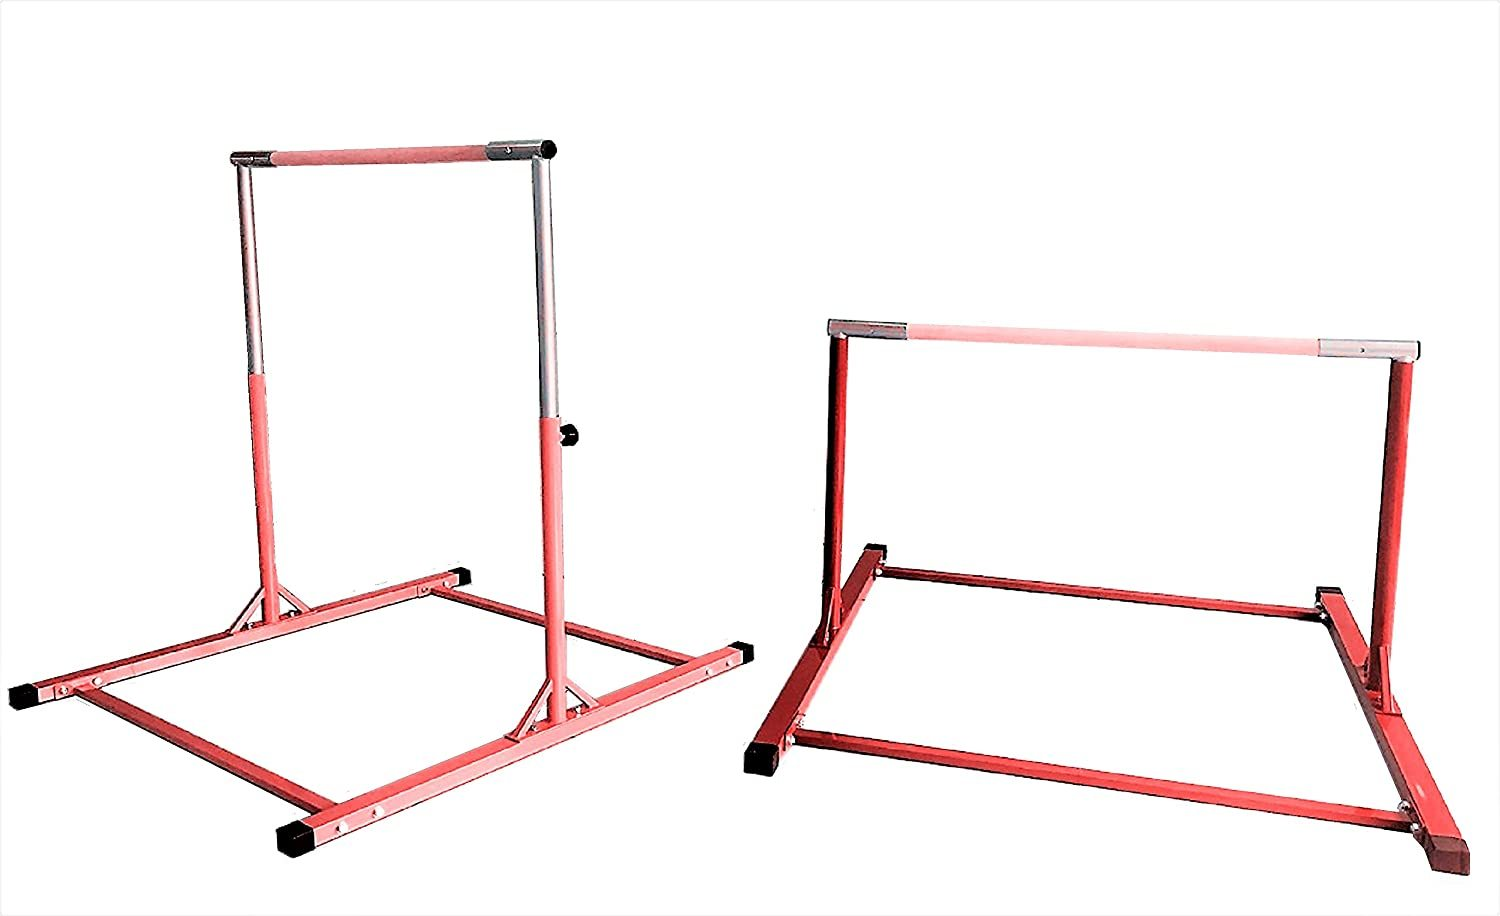 5 Ft Athletic Horizontal Bar Teens Adjustable Gymnastics Training Kip Bars RED